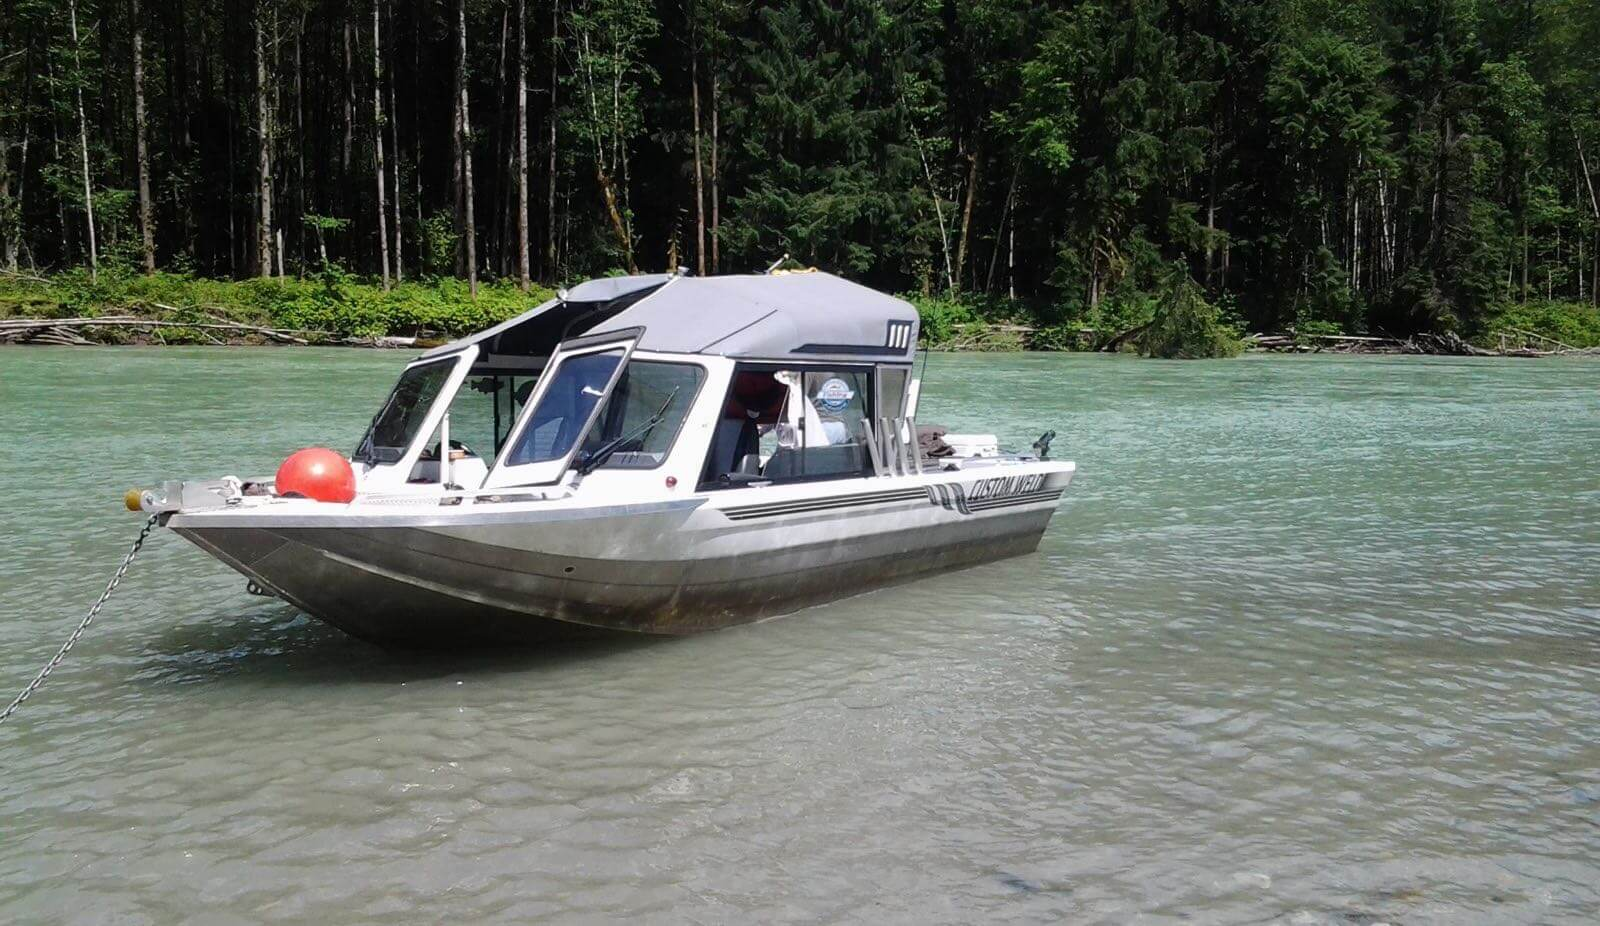 Southern Interior fishing lodge boats and equipment in BC